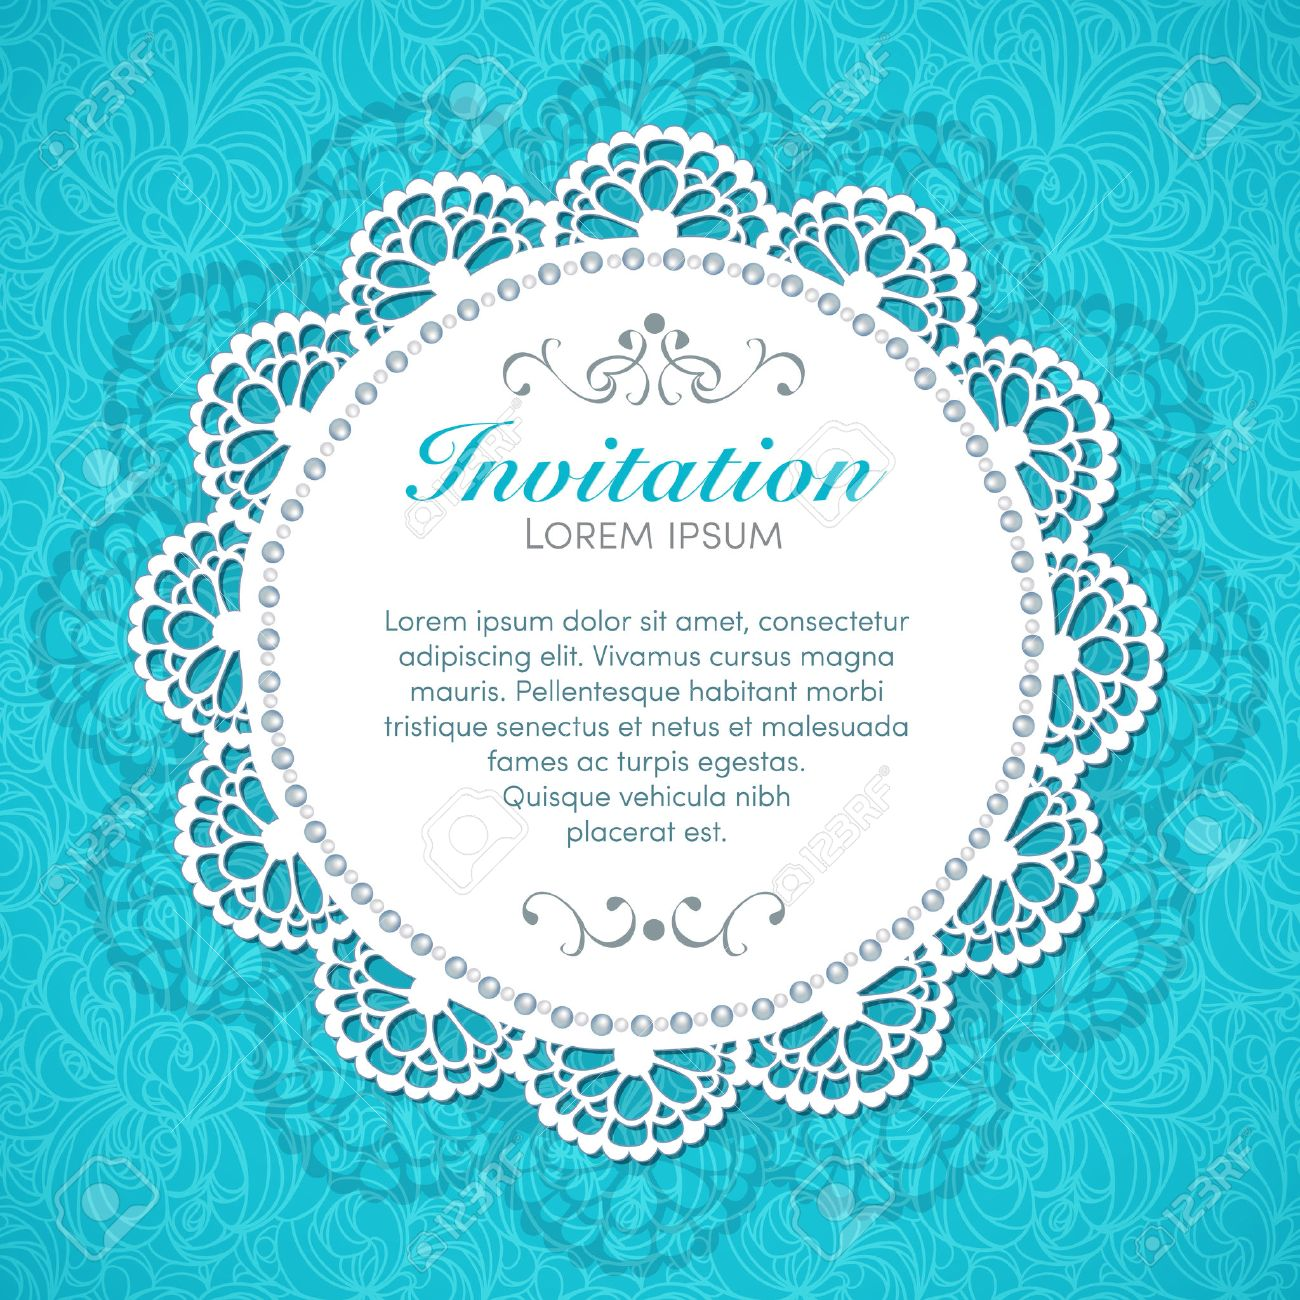 Vintage invitation card  Hand made decor on seamless lace background Stock Vector - 25198668